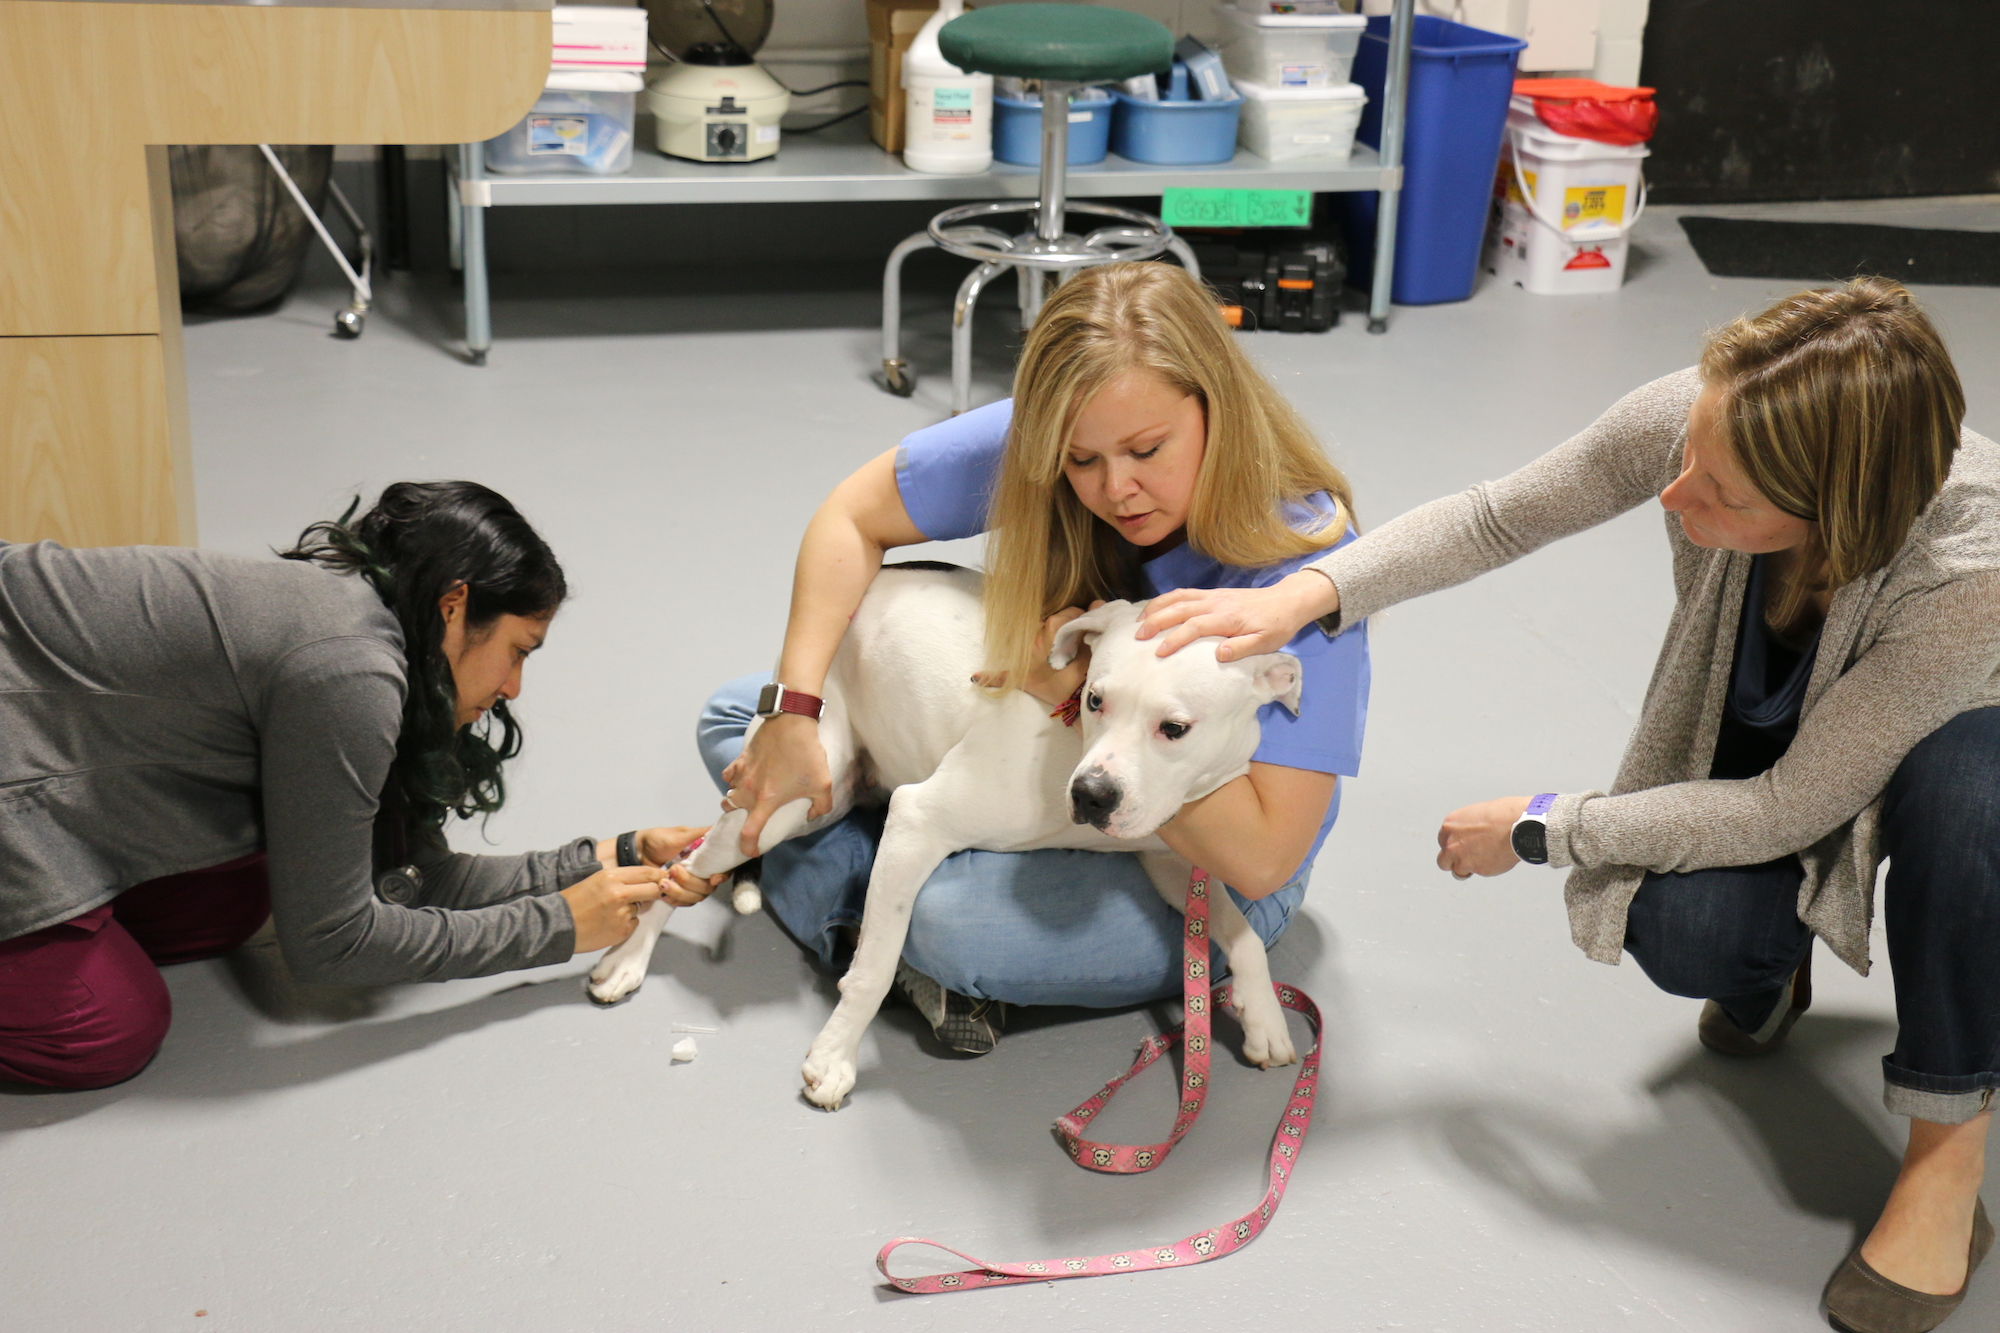 Photo of a veterinary technician holding a white terrier while a veterinary student provides treatment and a veterinarian pats the dog.